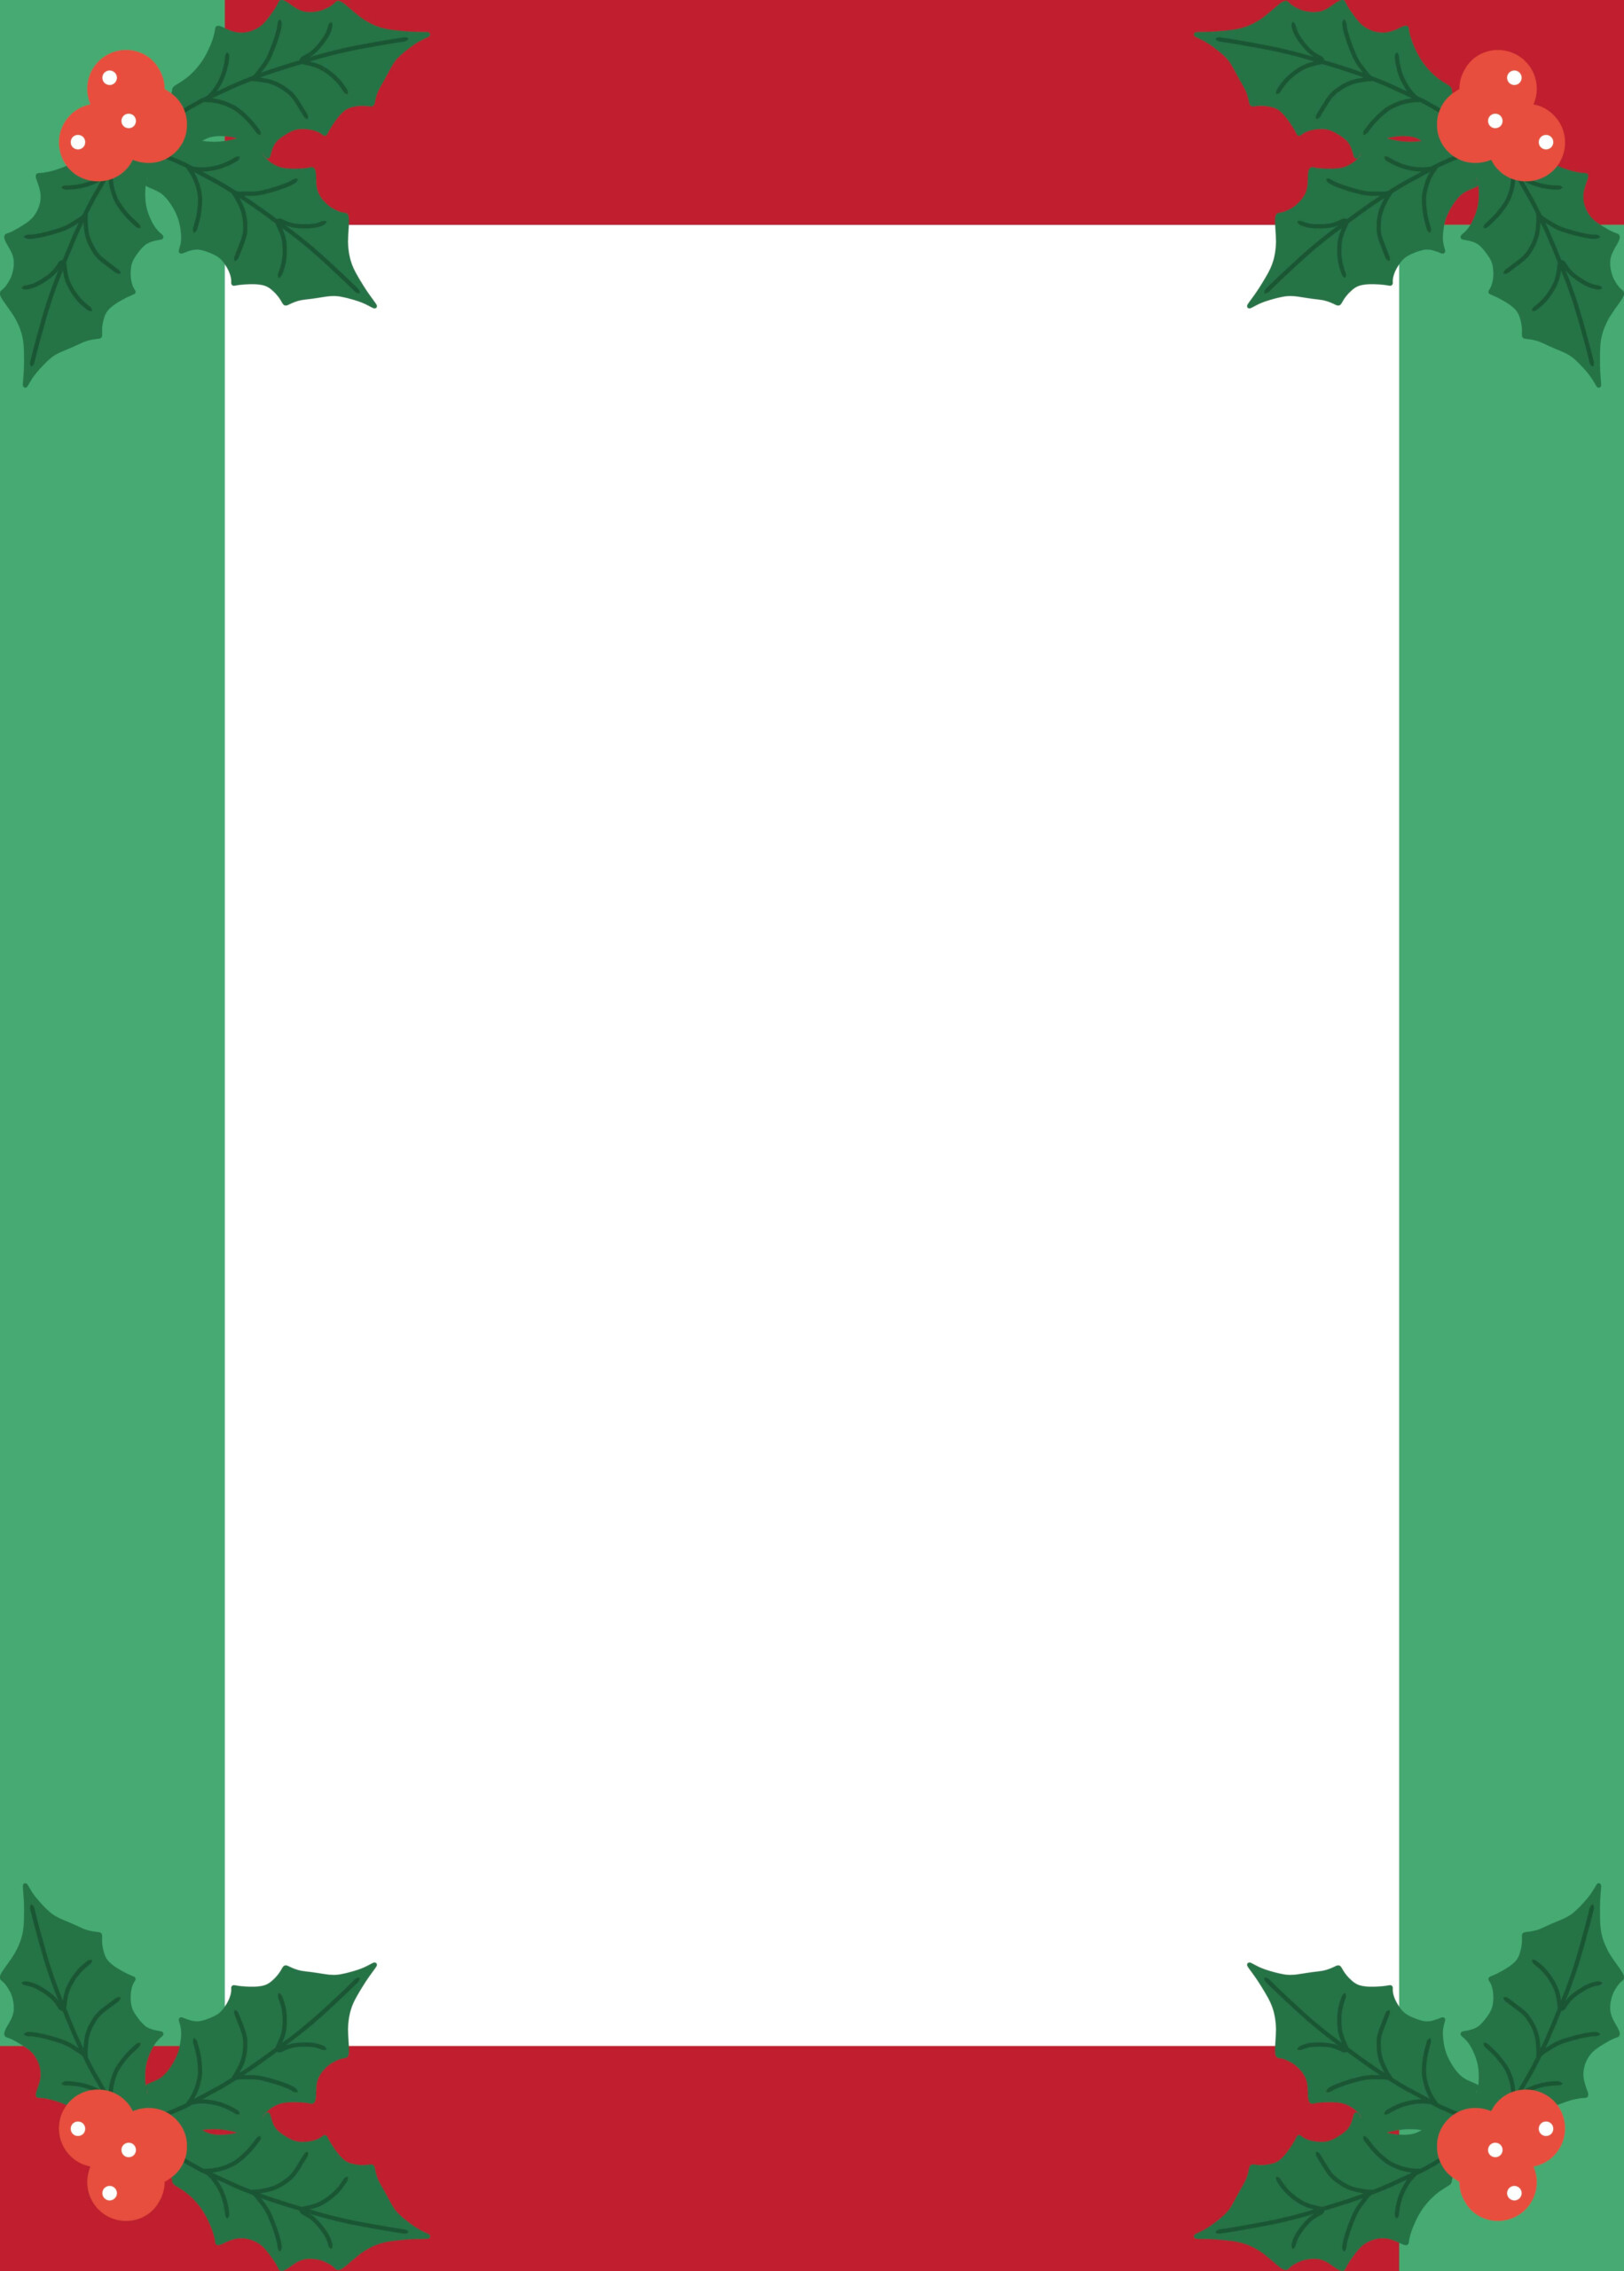 5 Best Images Of Free Printable Christmas Border Templates